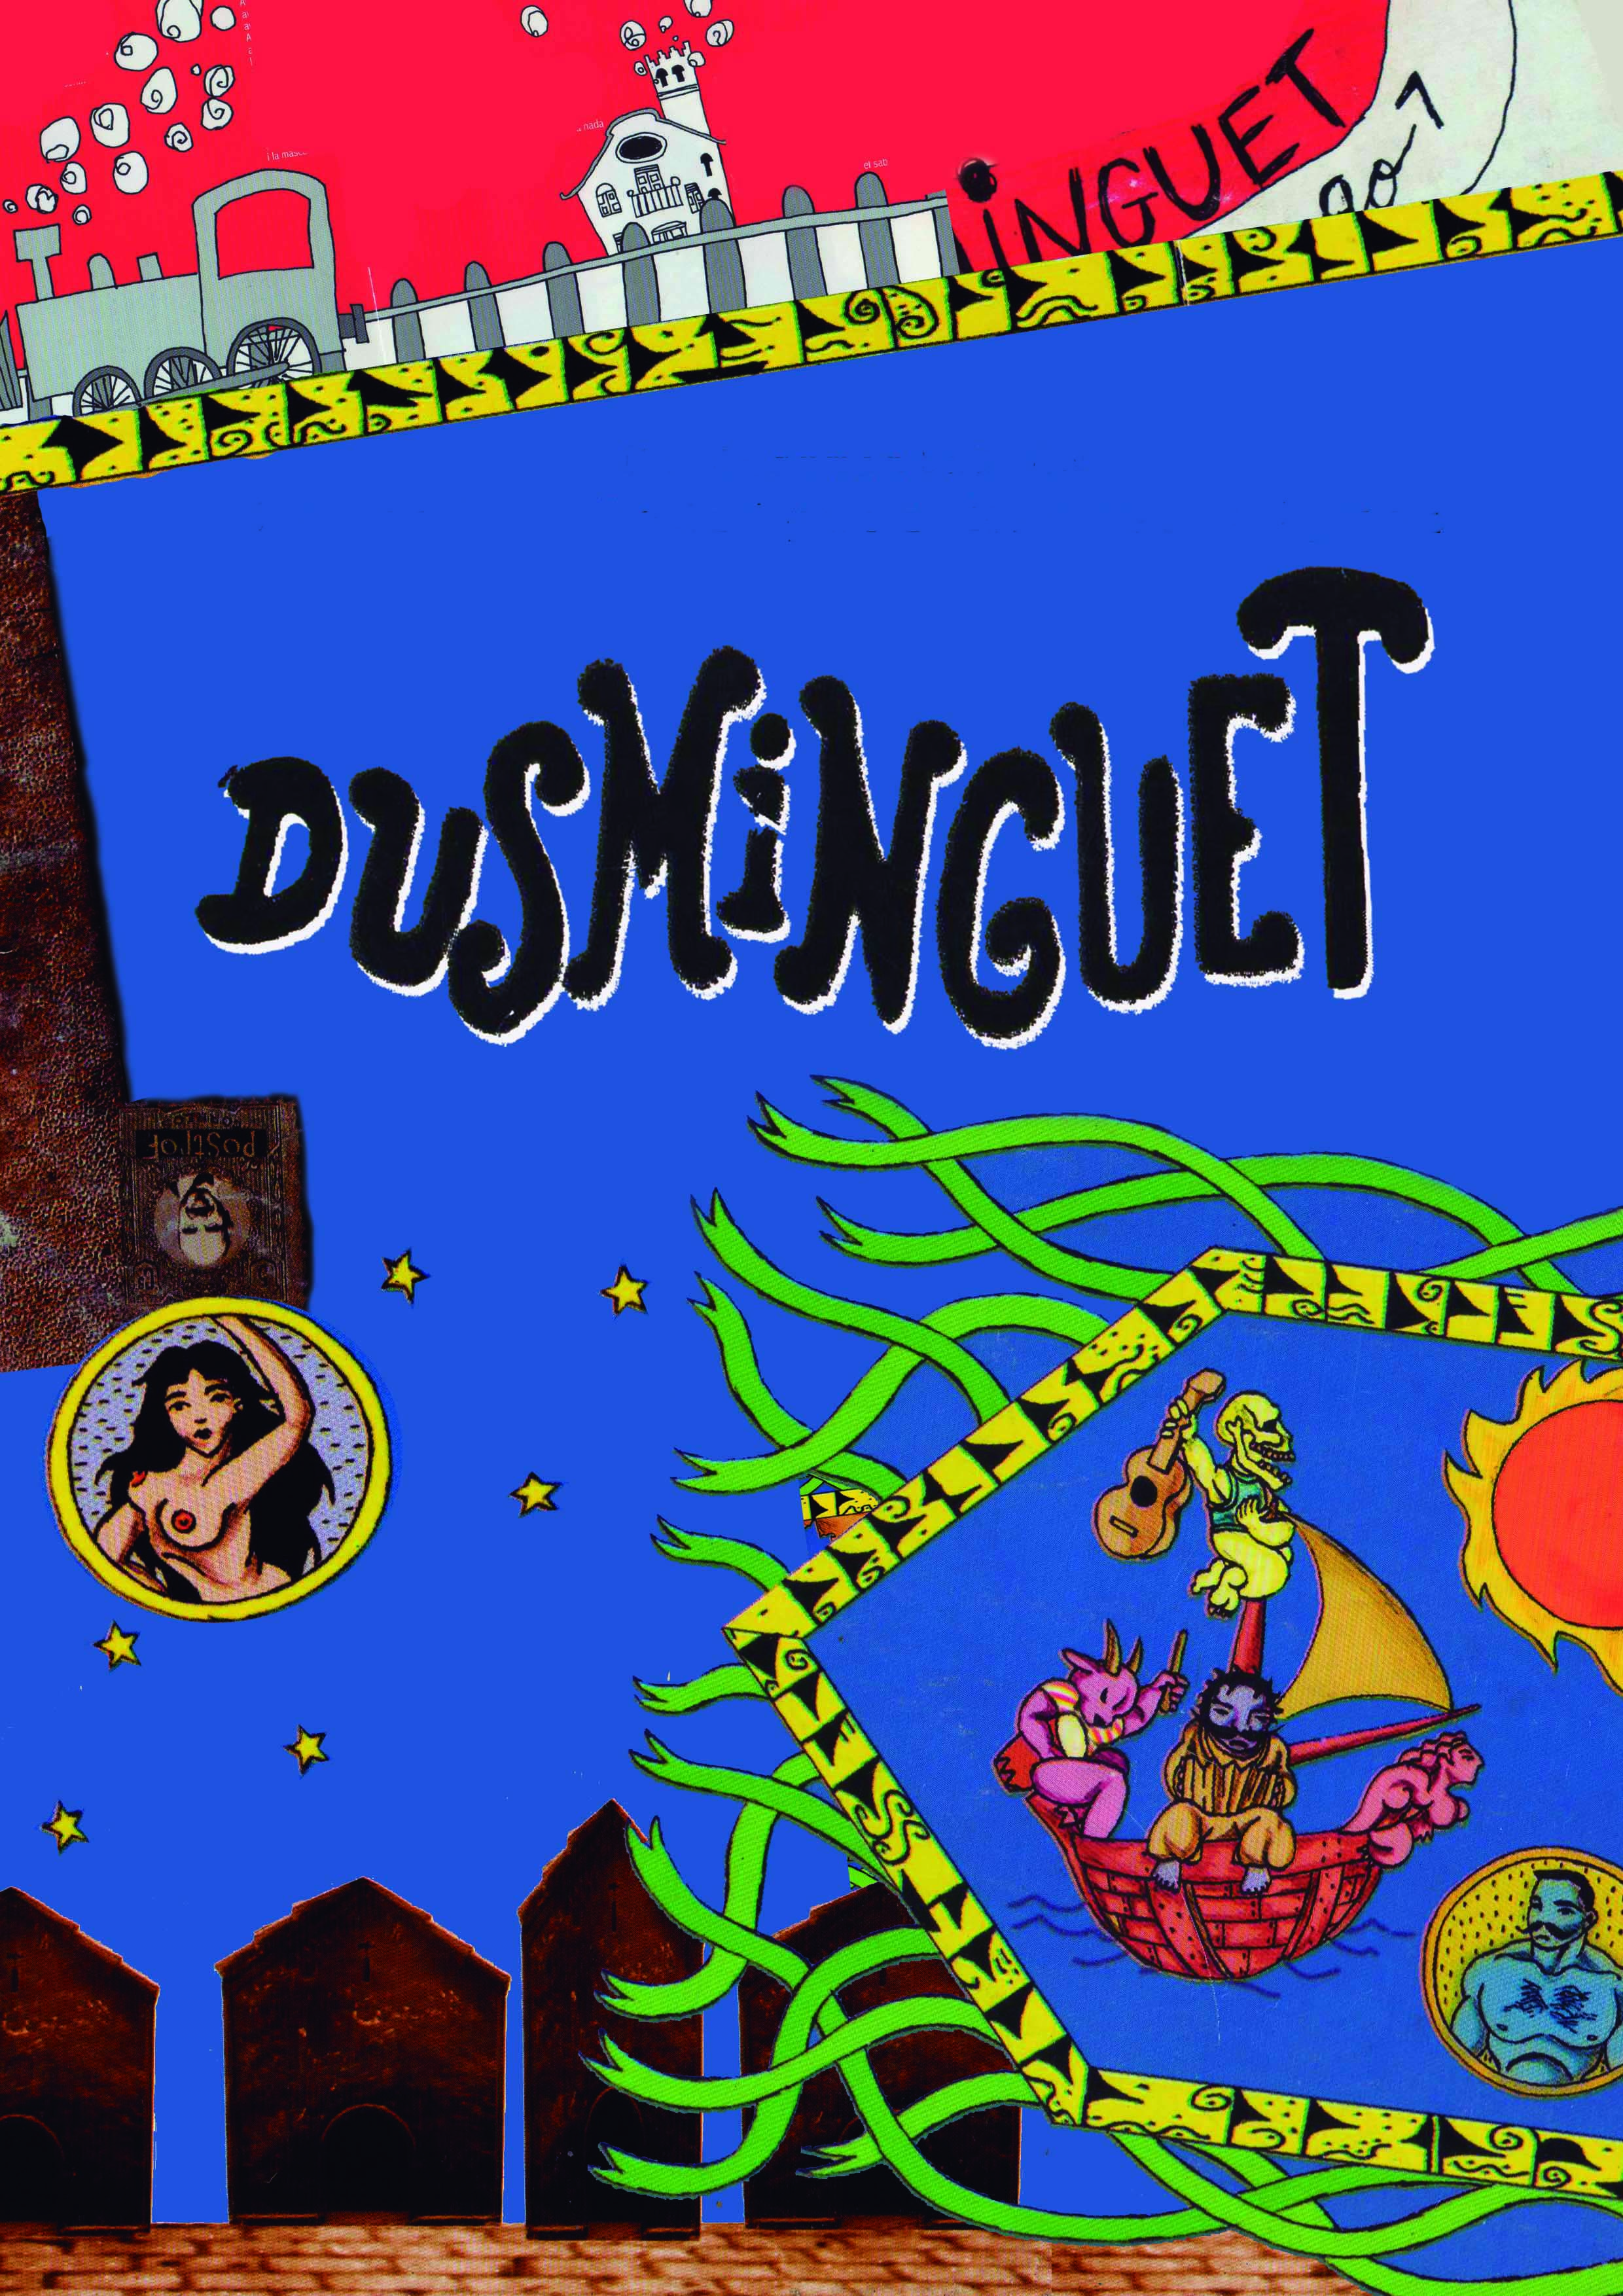 DUSMINGUET THE DOCUMENTARY